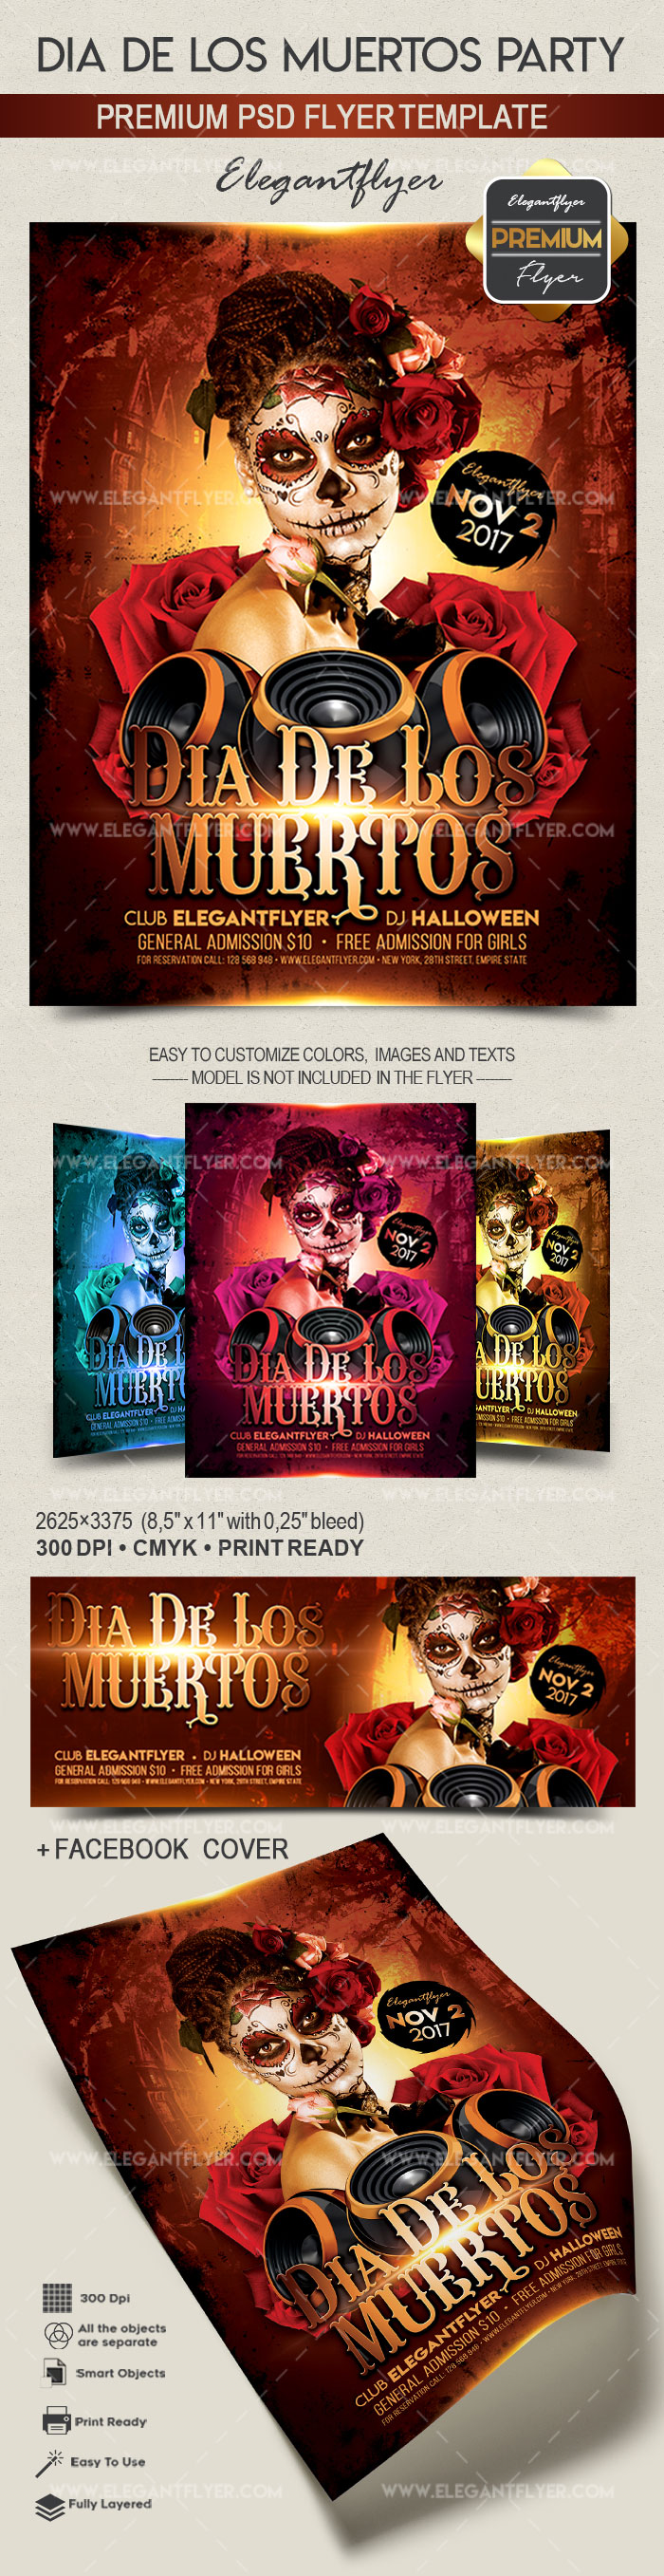 Party Flyer For Dia De Los Muertos